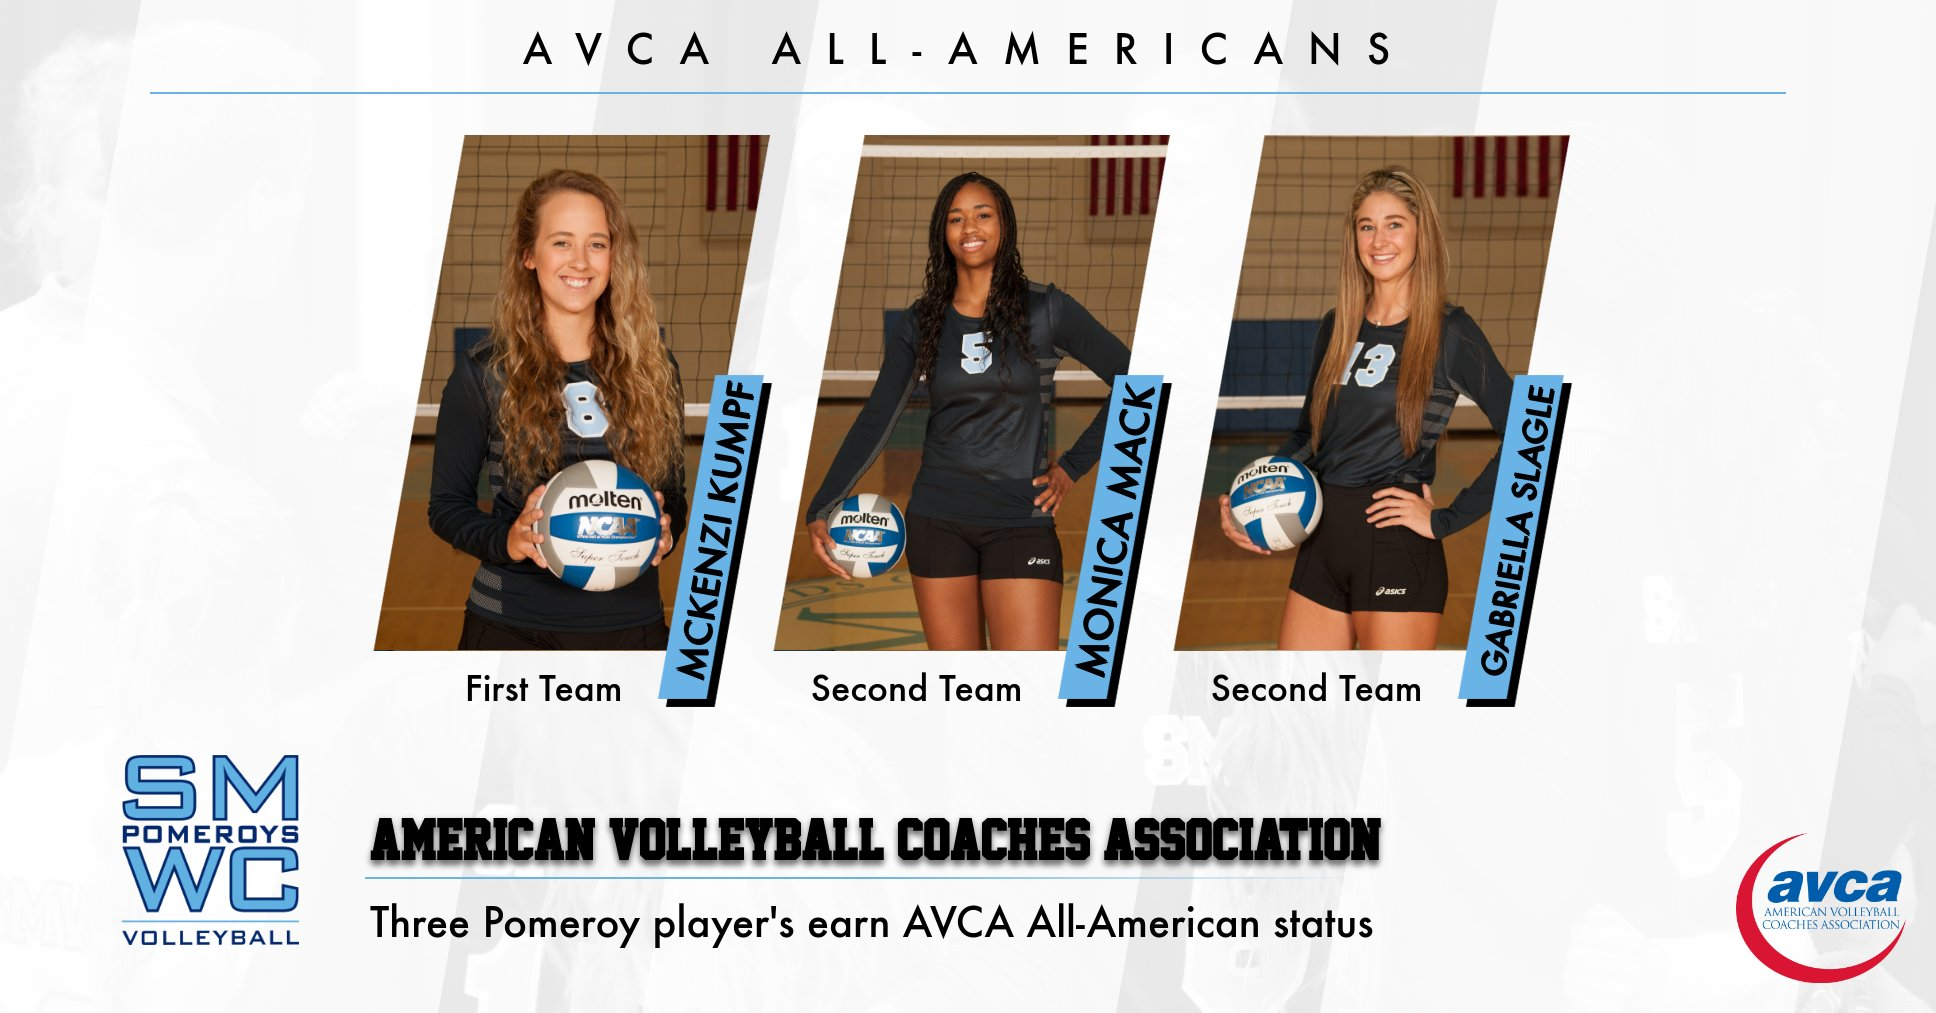 Kumpf, Mack, and Slagle Earn AVCA All-American Honors